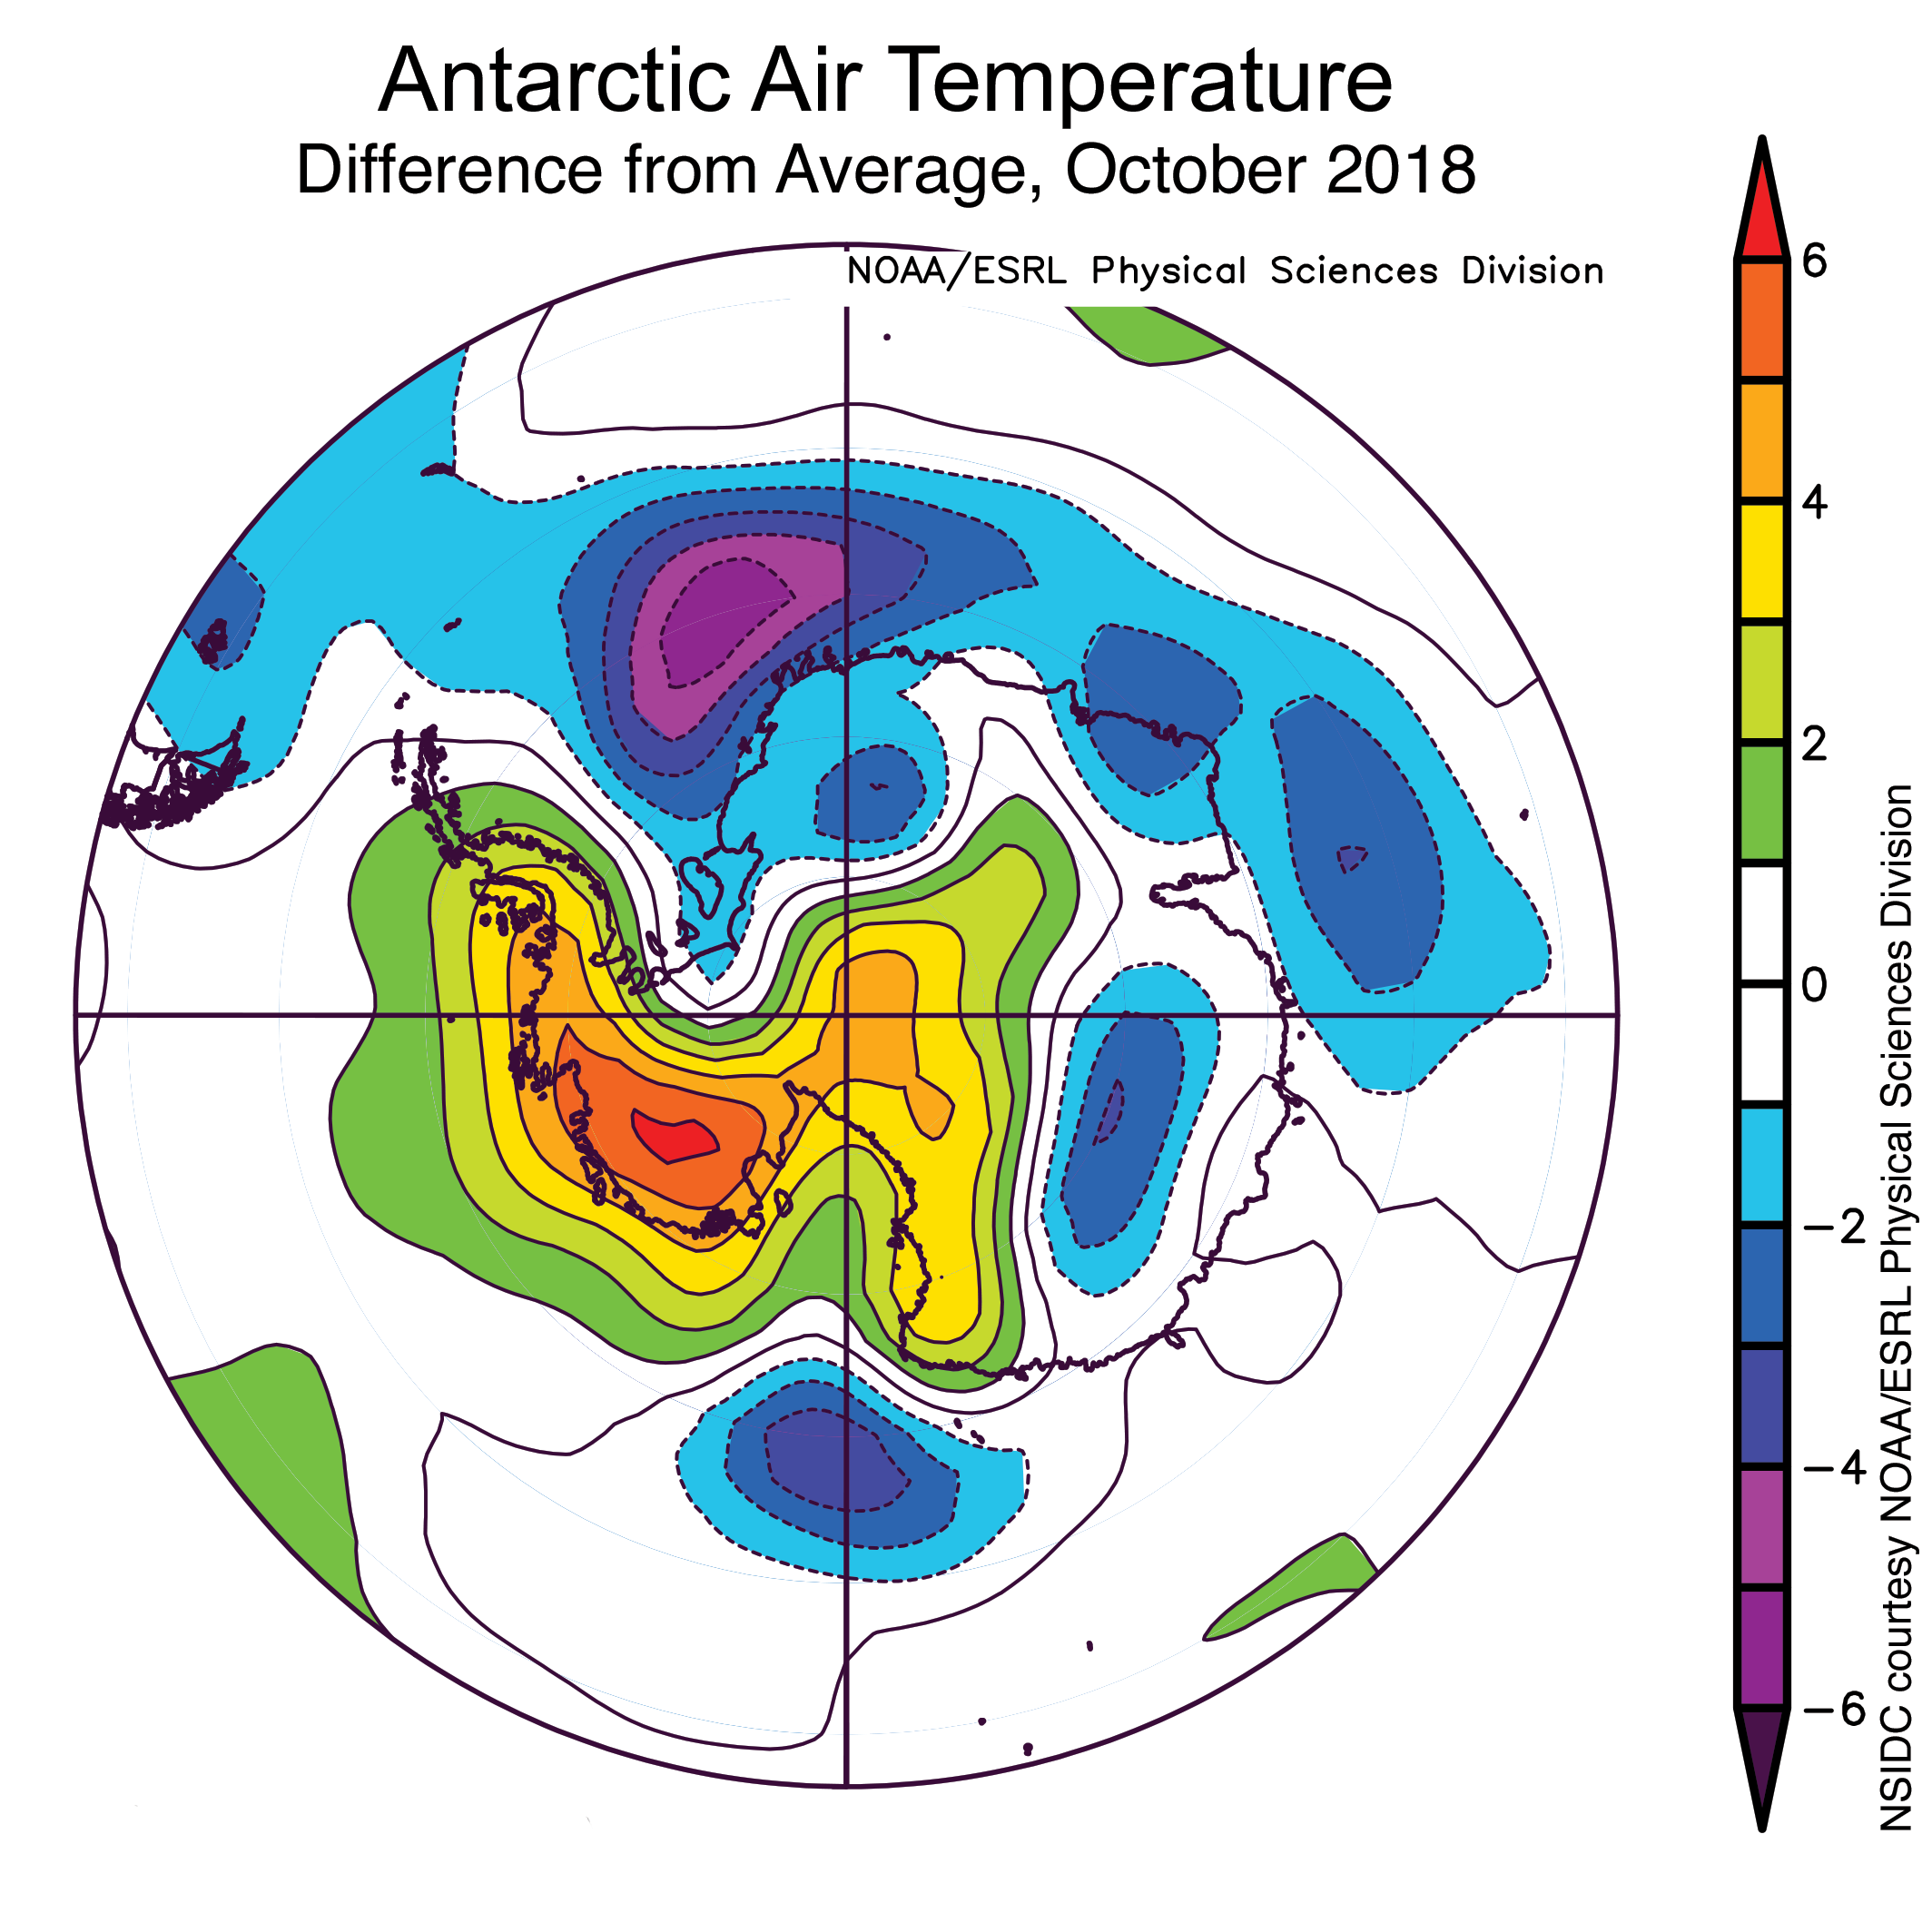 Arctic Sea Ice News And Analysis Data Updated Daily With Typical Home Wireless Network Diagram This Plot Shows The Departure From Average Air Temperature In